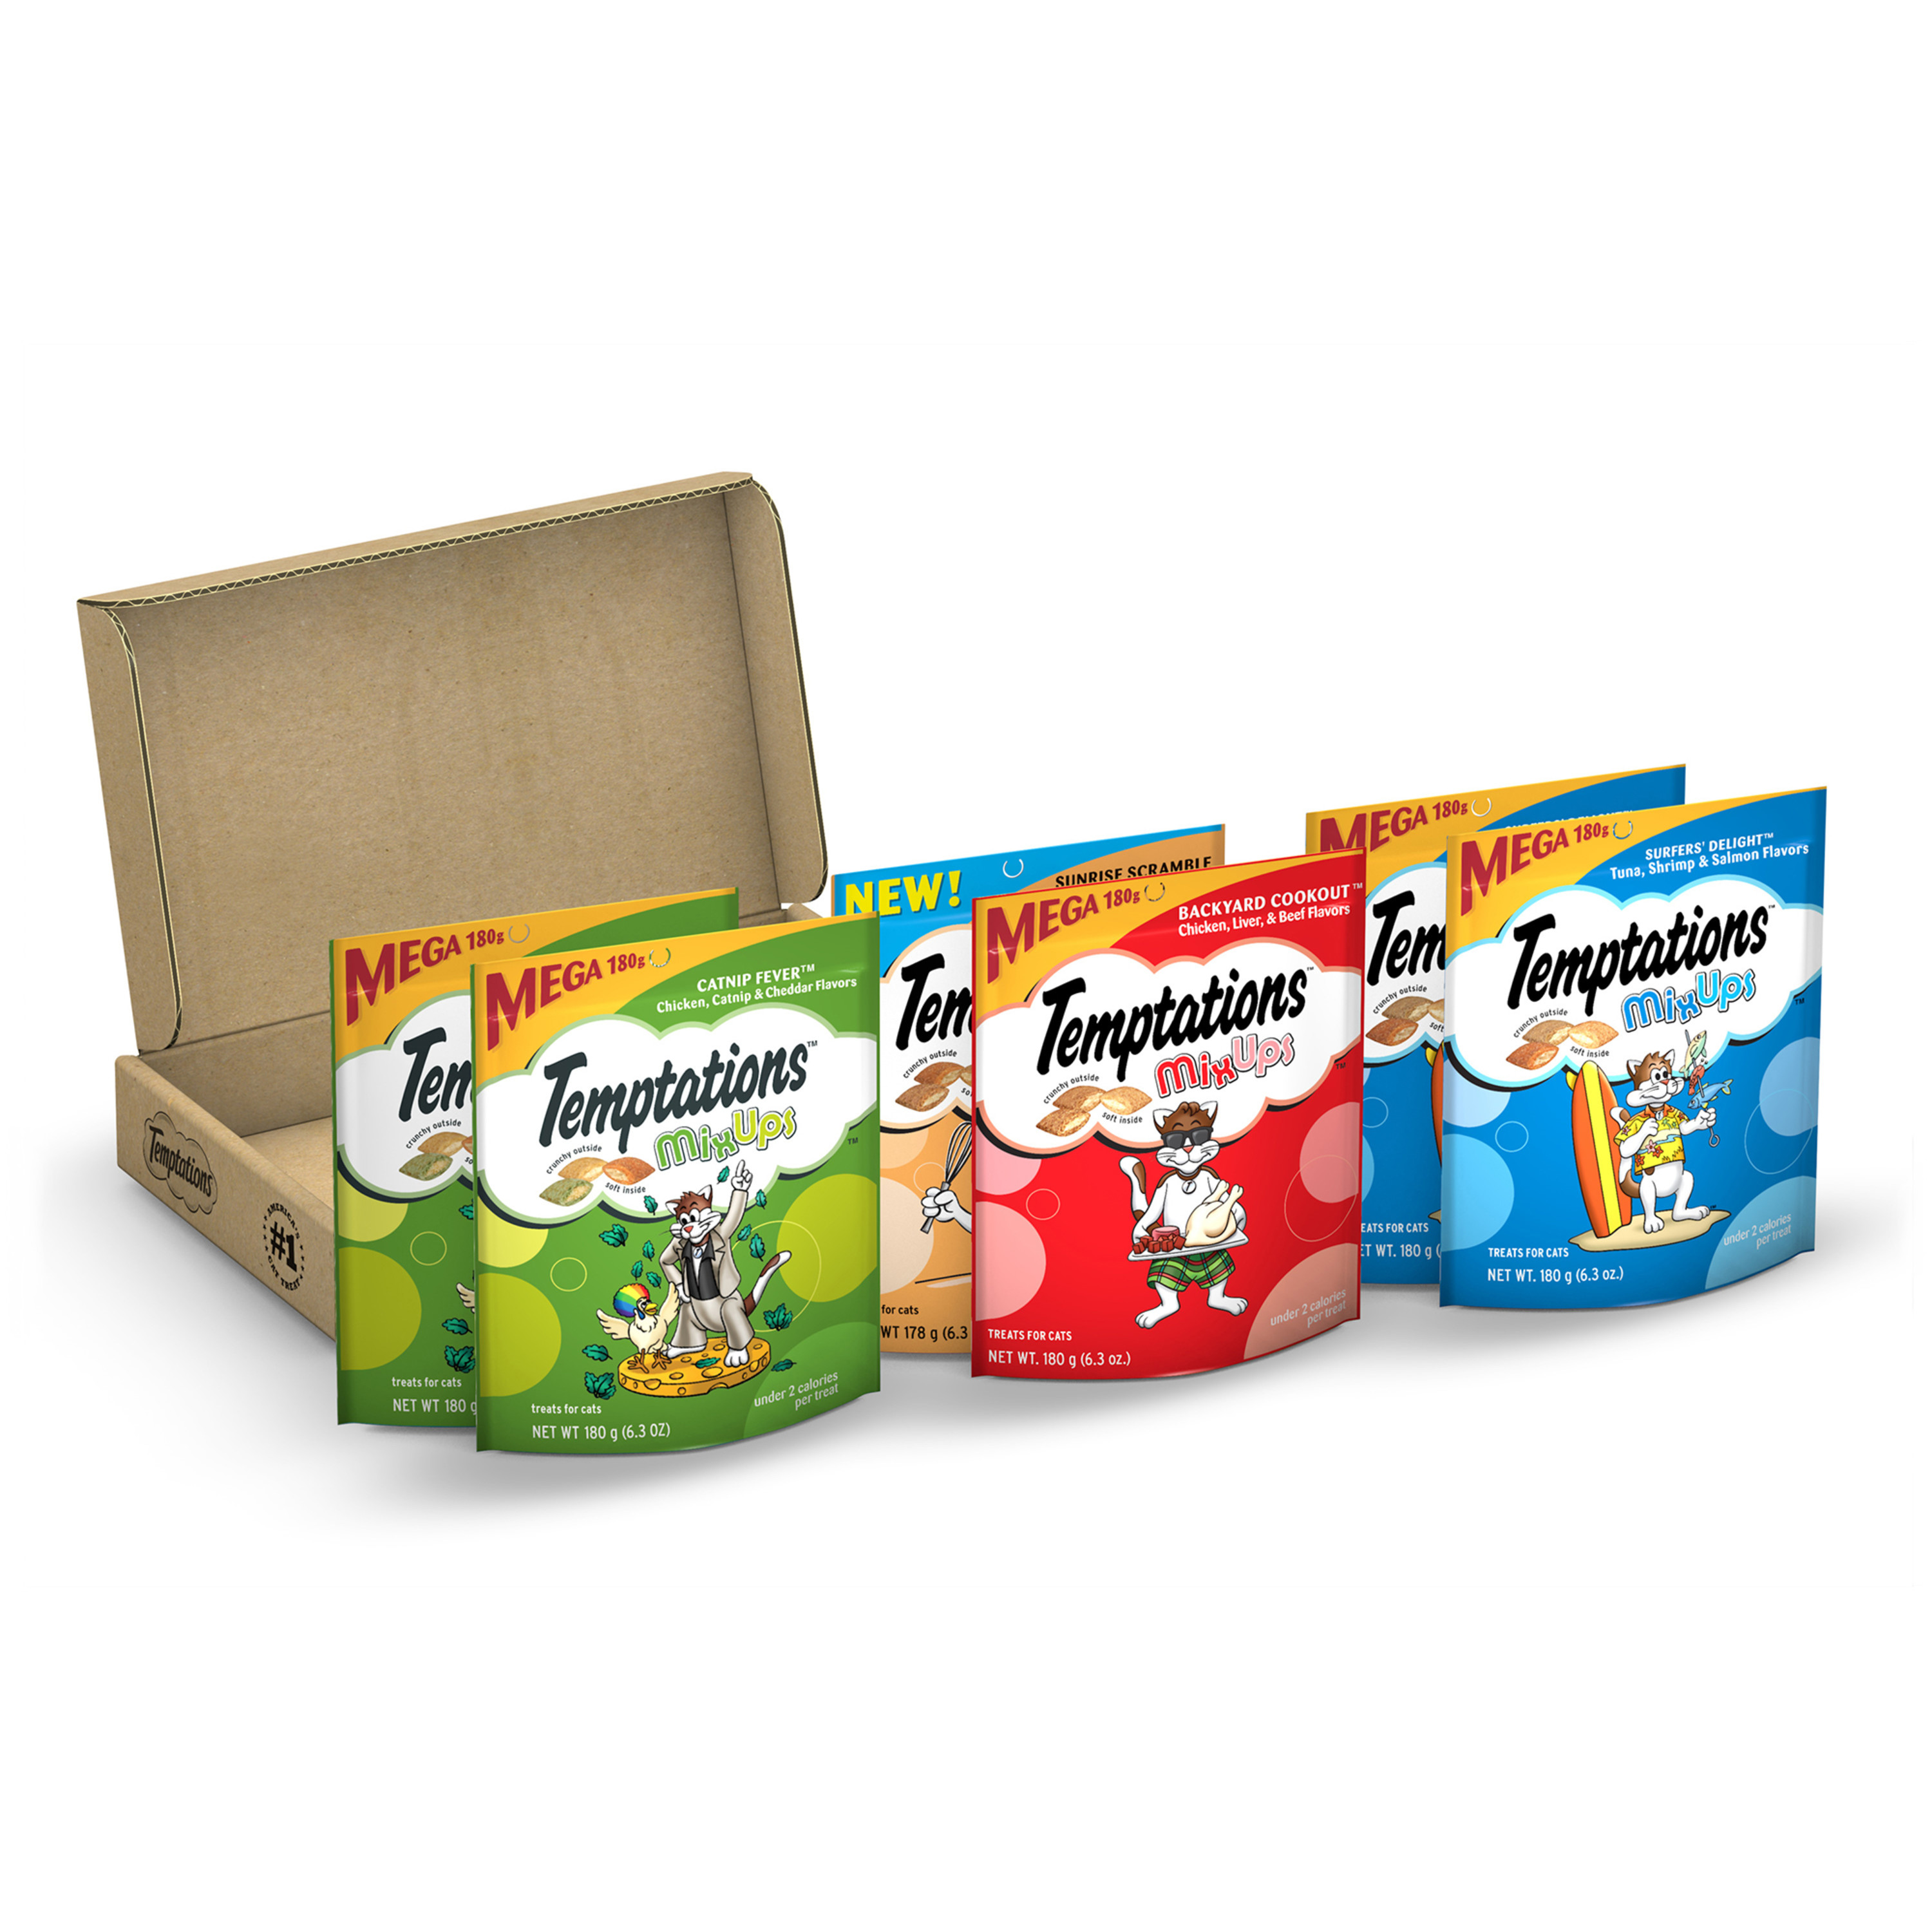 TEMPTATIONS MIXUPS Cat Treats Variety Pack in Catnip Fever, Surfers' Delight, Backyard Cookout, and Sunrise Scramble Flavor, (6) 6.3 oz. Pouches